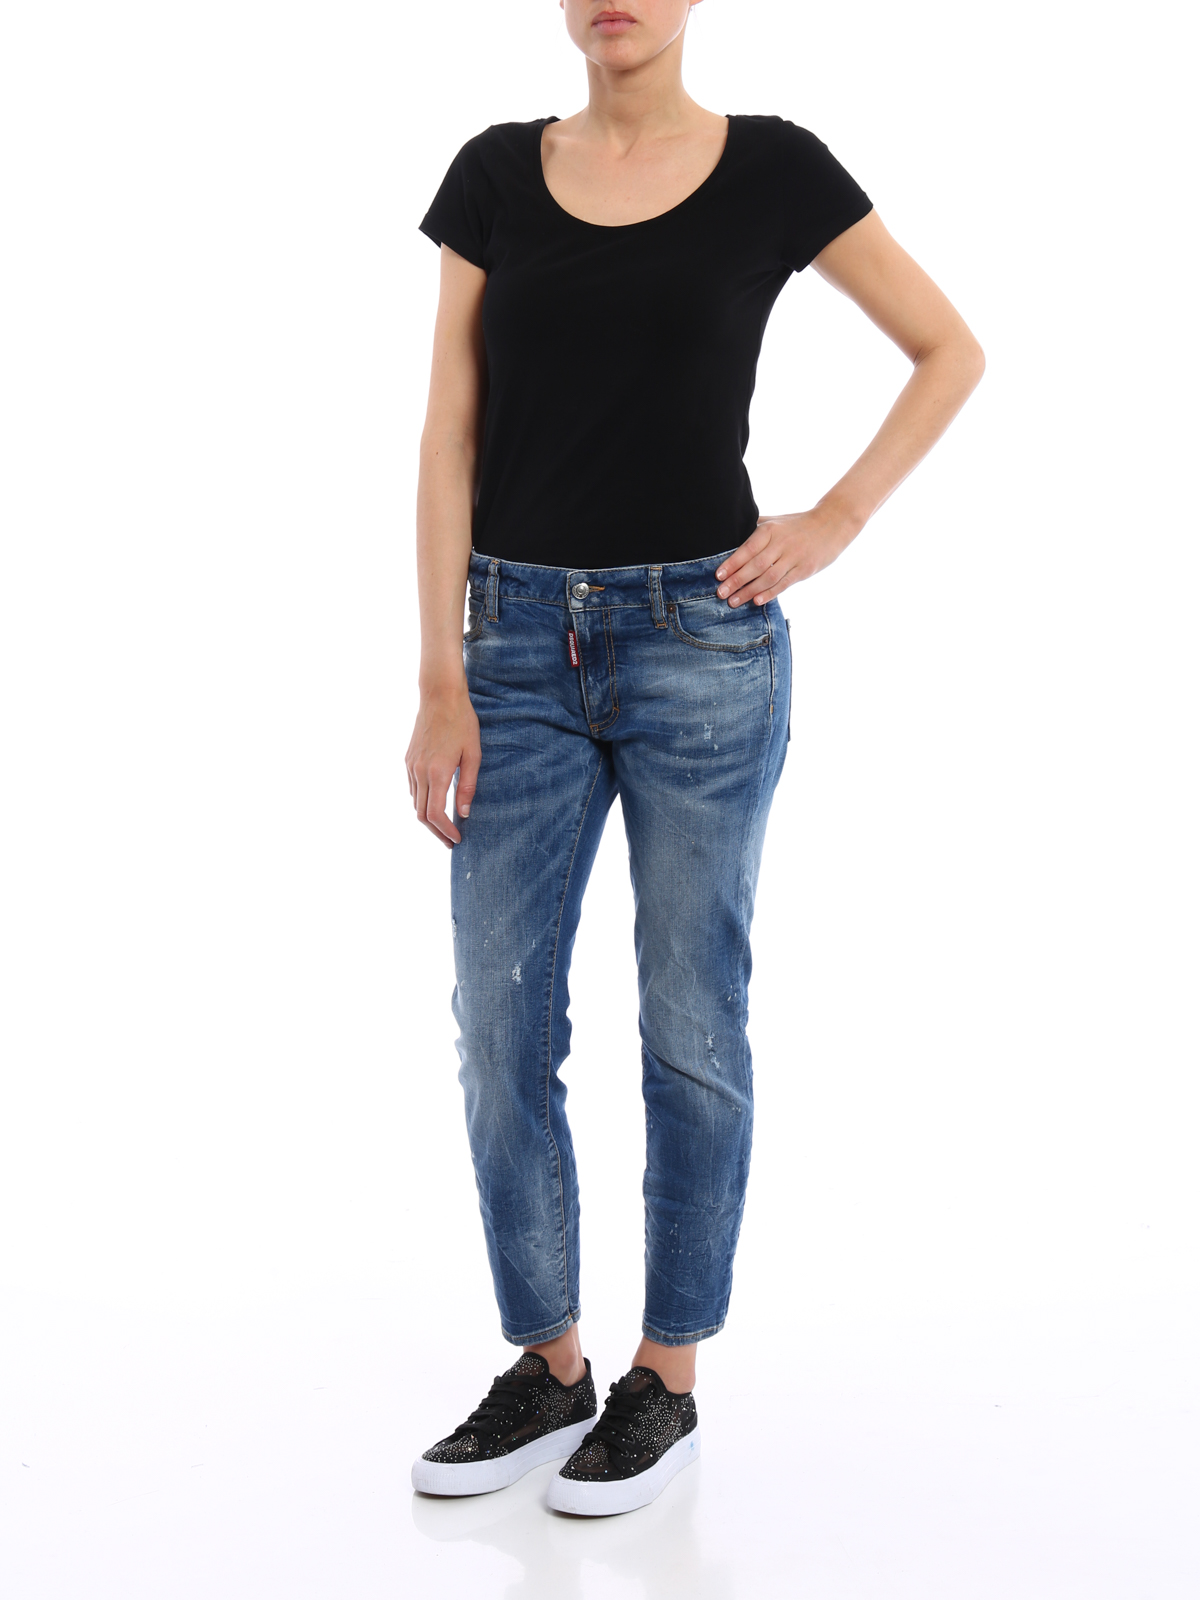 305bbdb282ce8a DSQUARED2  Jeans skinny online - Jean Skinny Twiggy Pour Femme